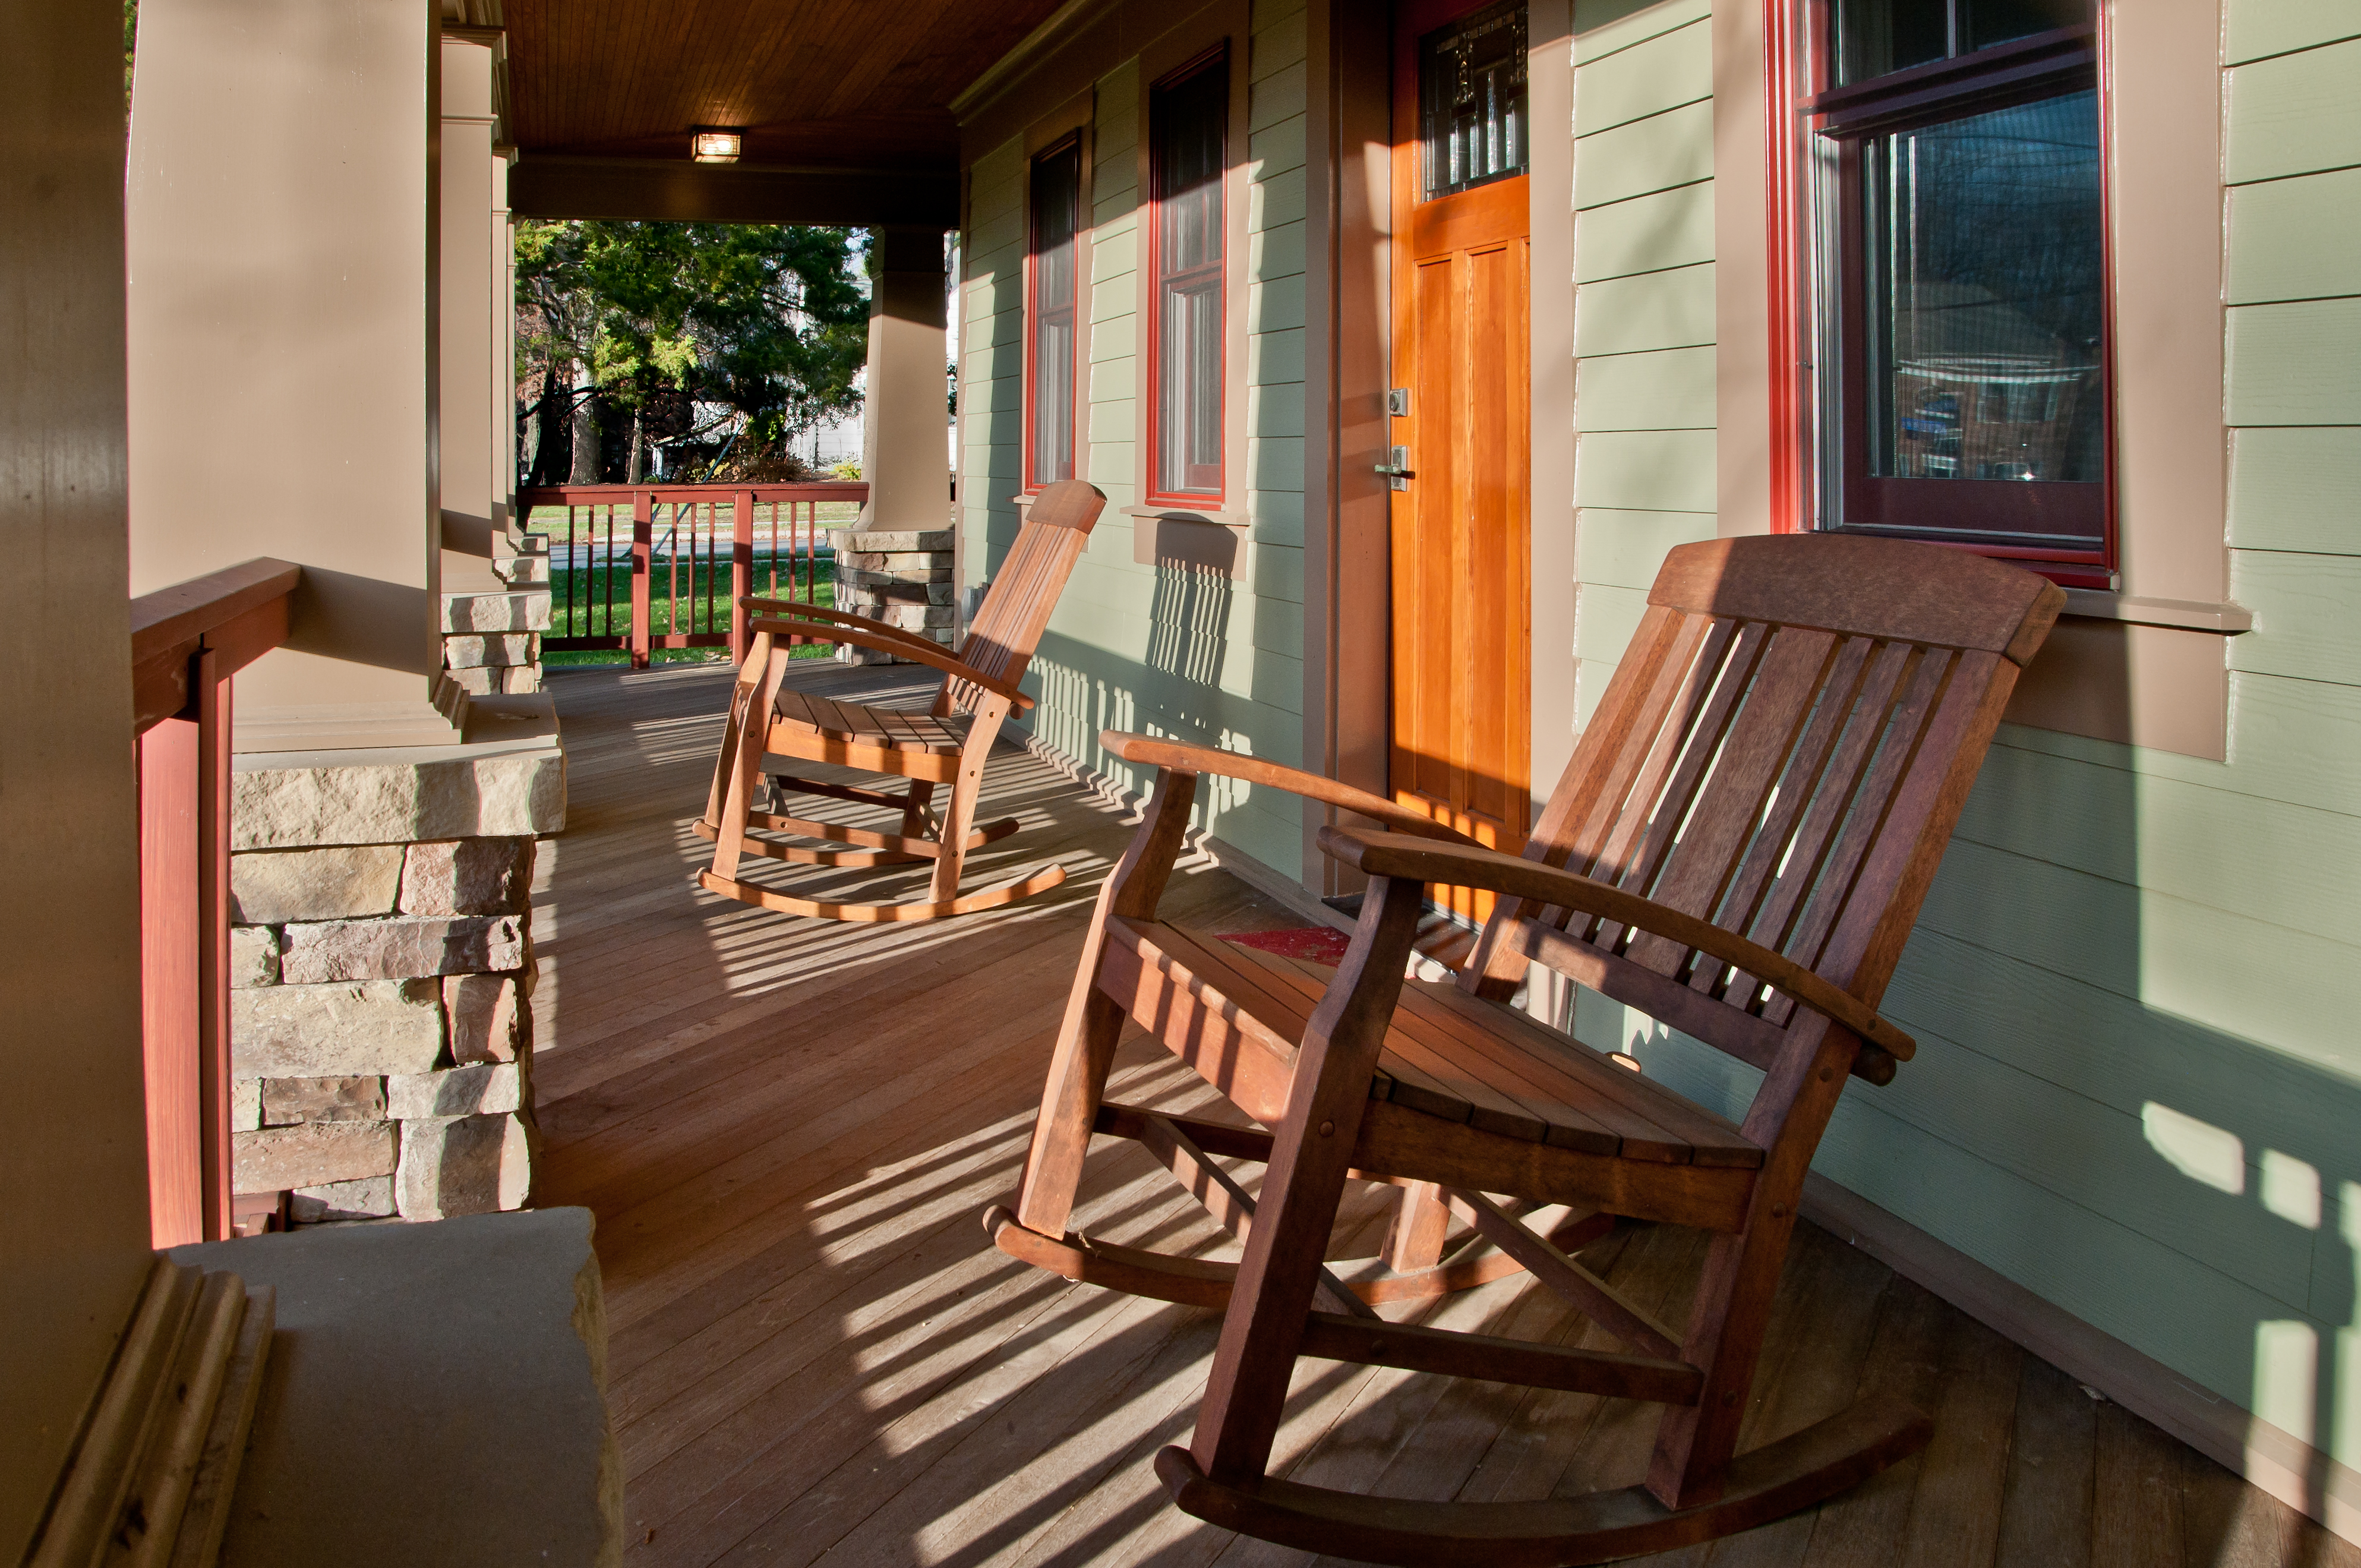 The stone and wood front porch has two rocking chairs flanking the door. The mint-green exterior contrasts with the warm, bright wood front door.